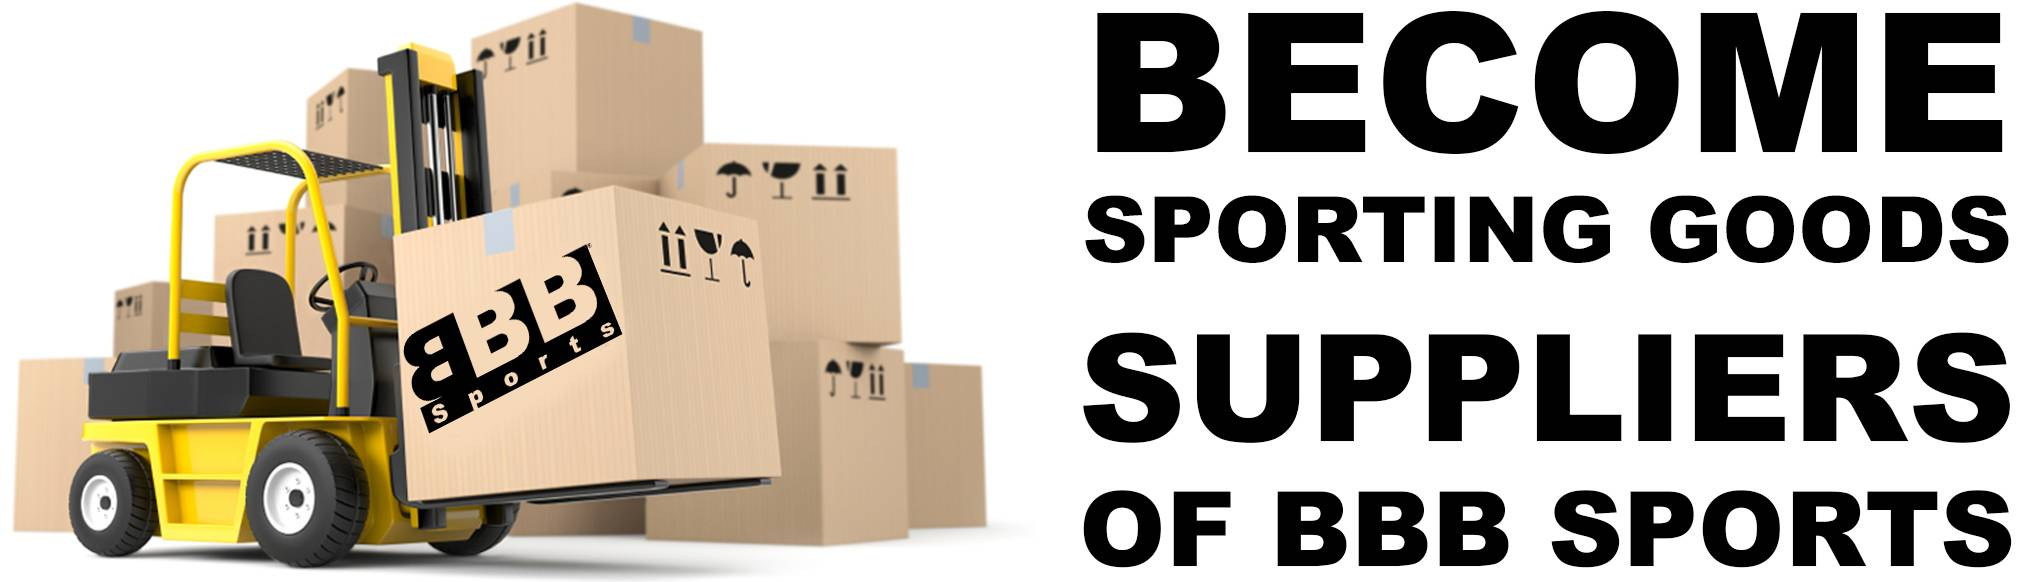 Sporting goods supplier